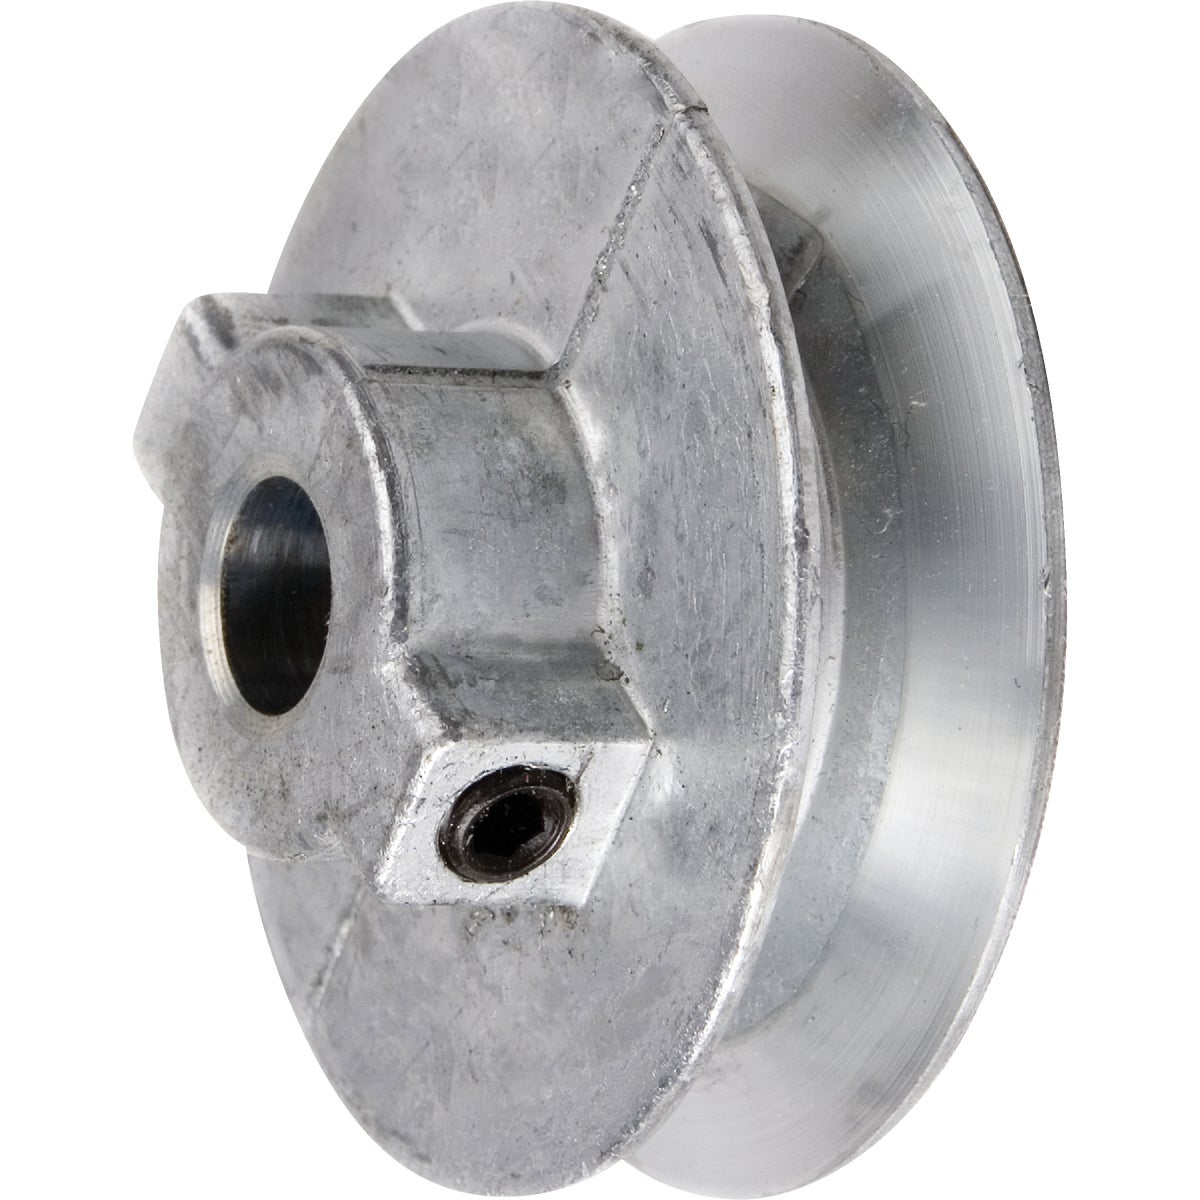 3-1/2X3/4 PULLEY